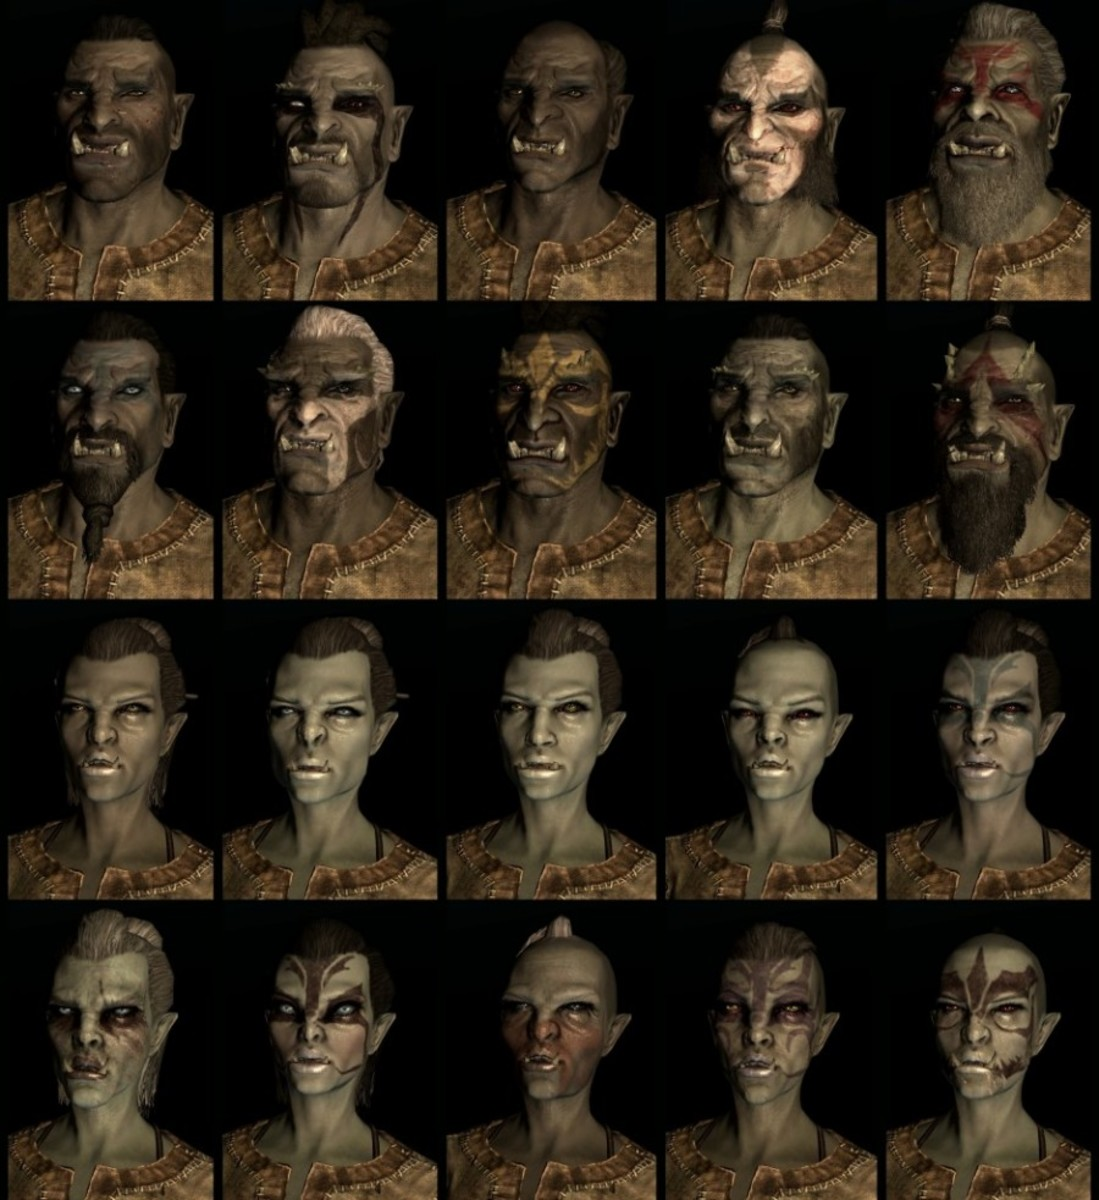 Compilation of Skyrim Orc faces